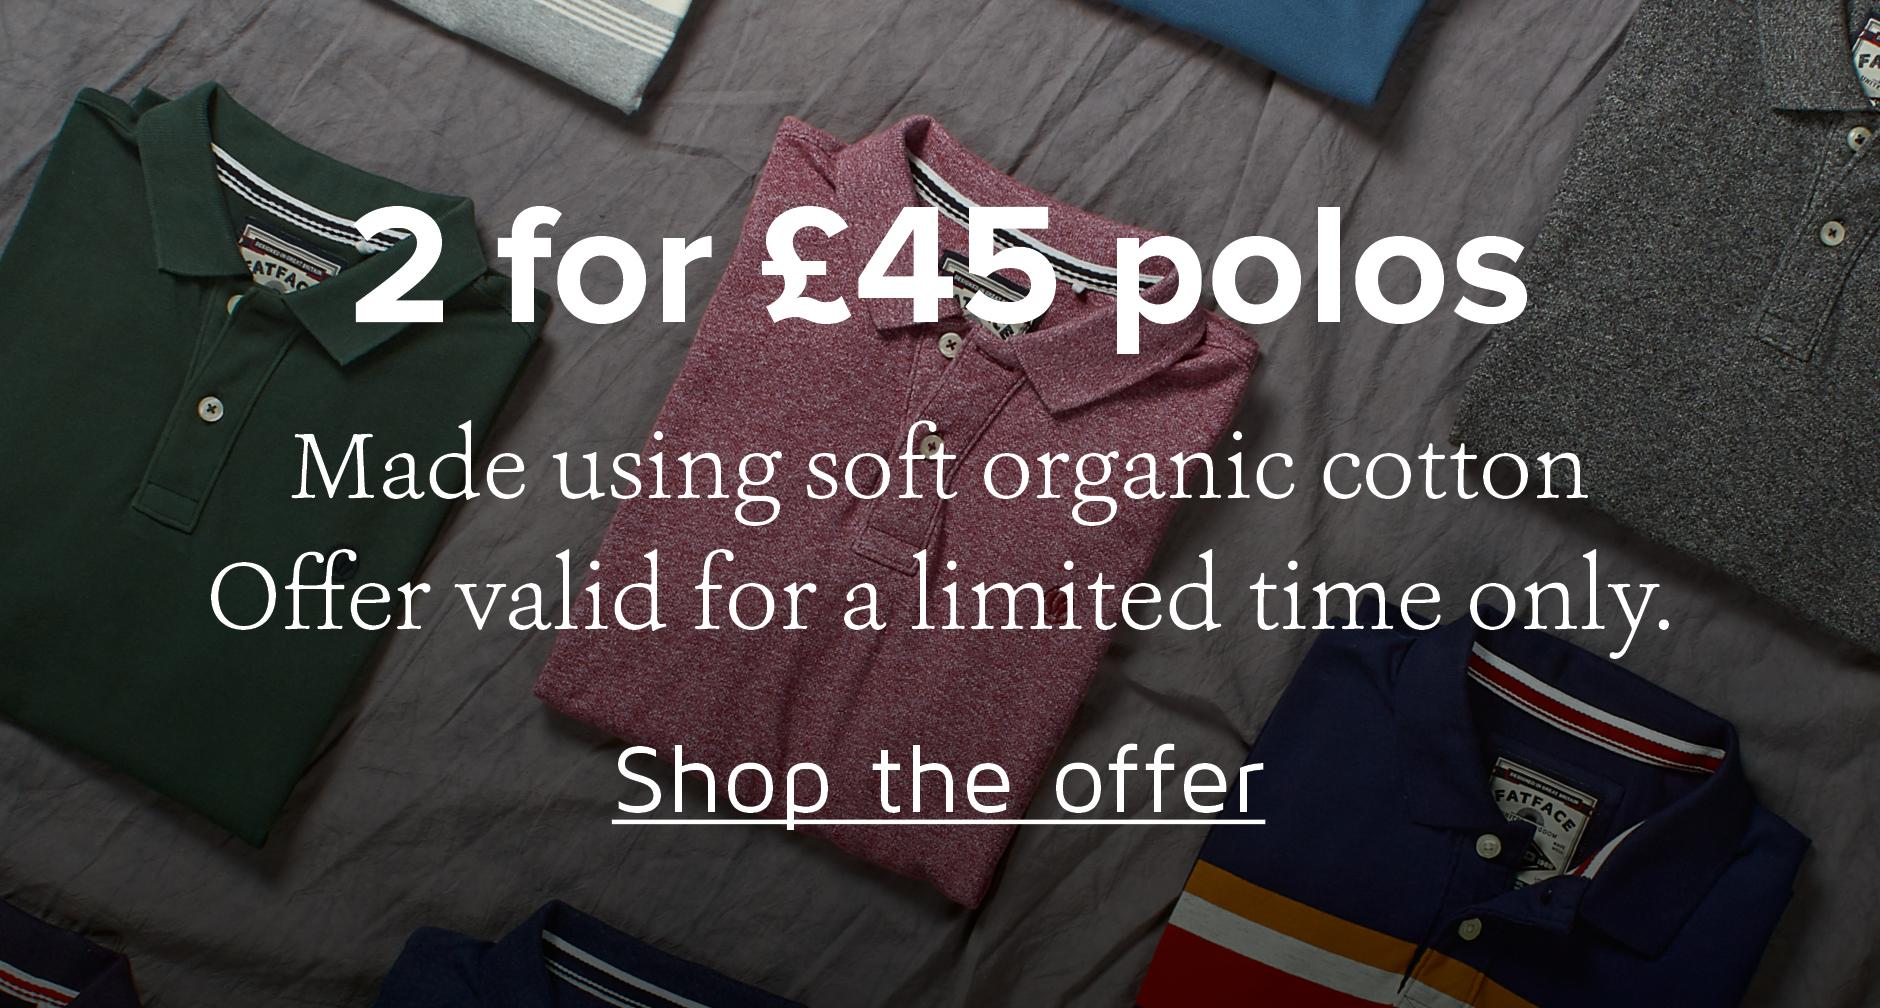 2 for £45 Polos